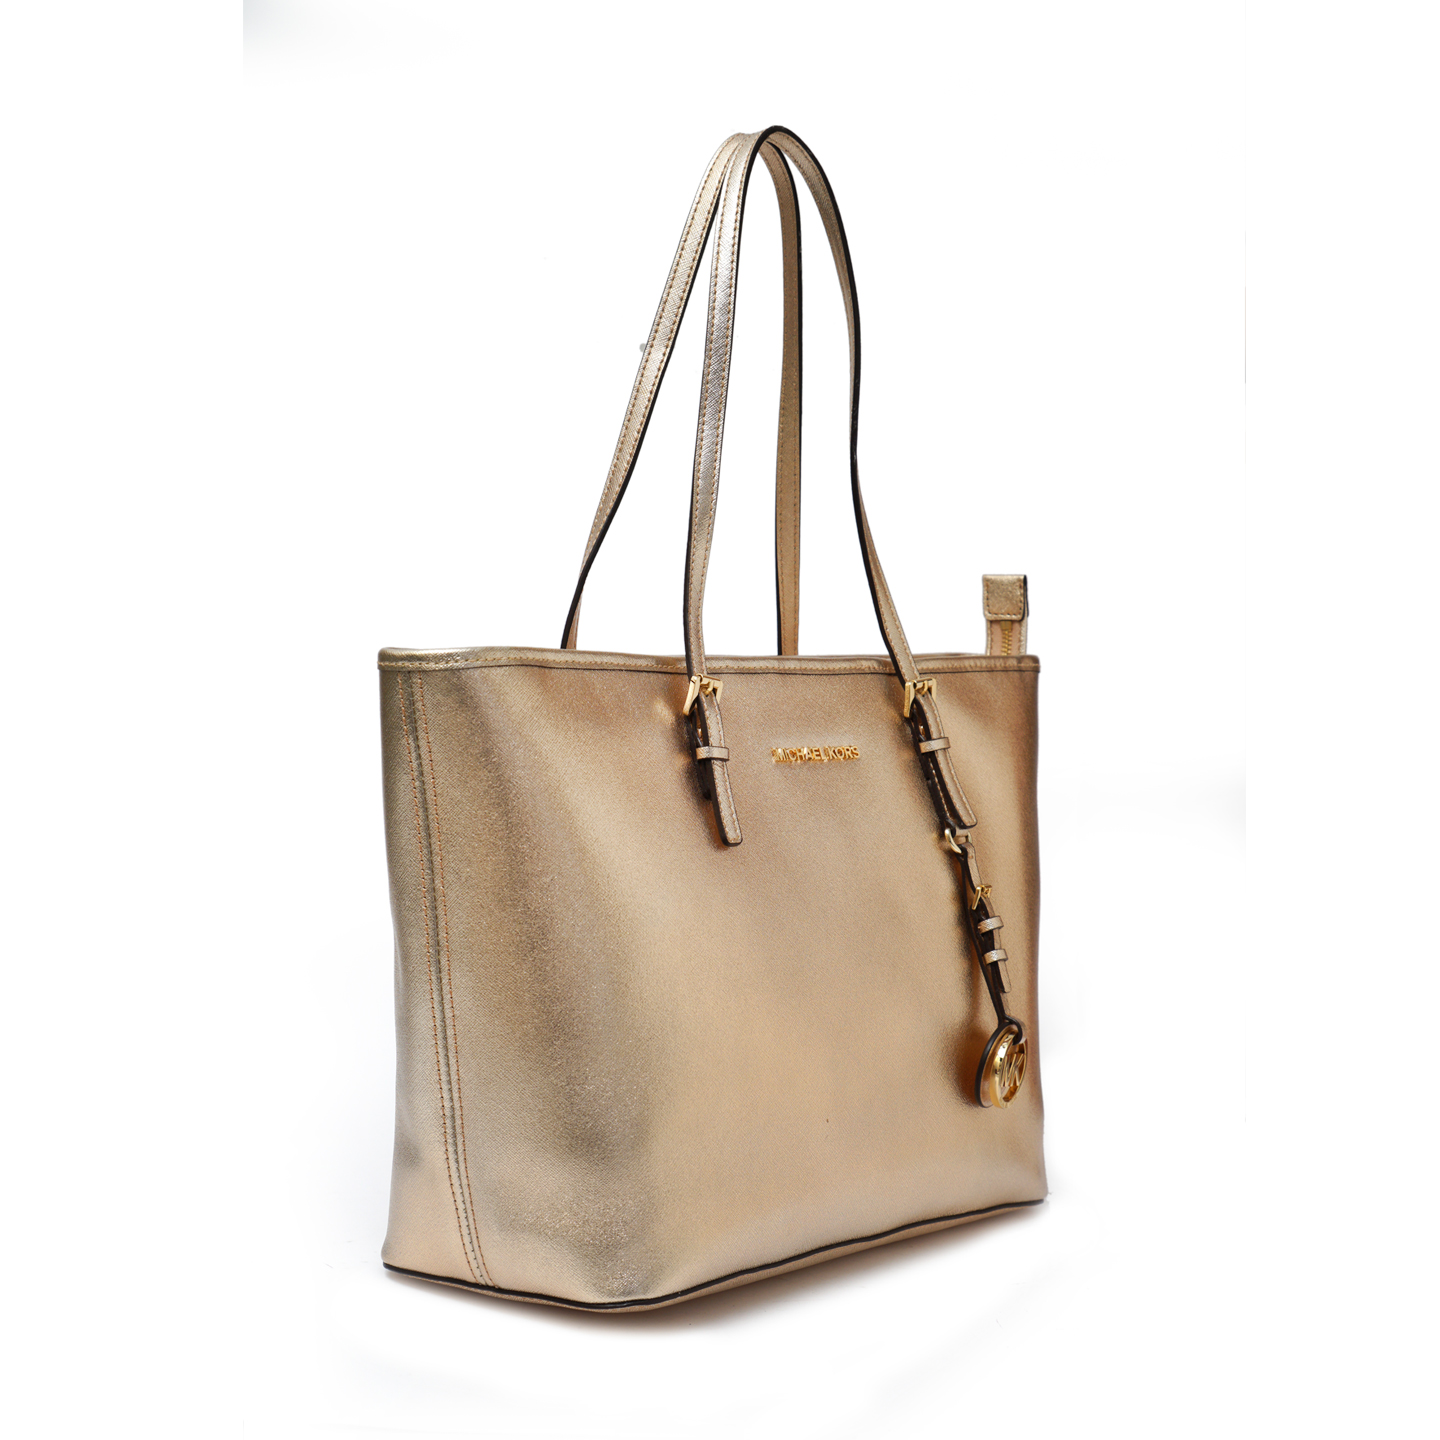 12a49fcc9 Michael Kors Jet Set Metallic Gold Tote - LabelCentric